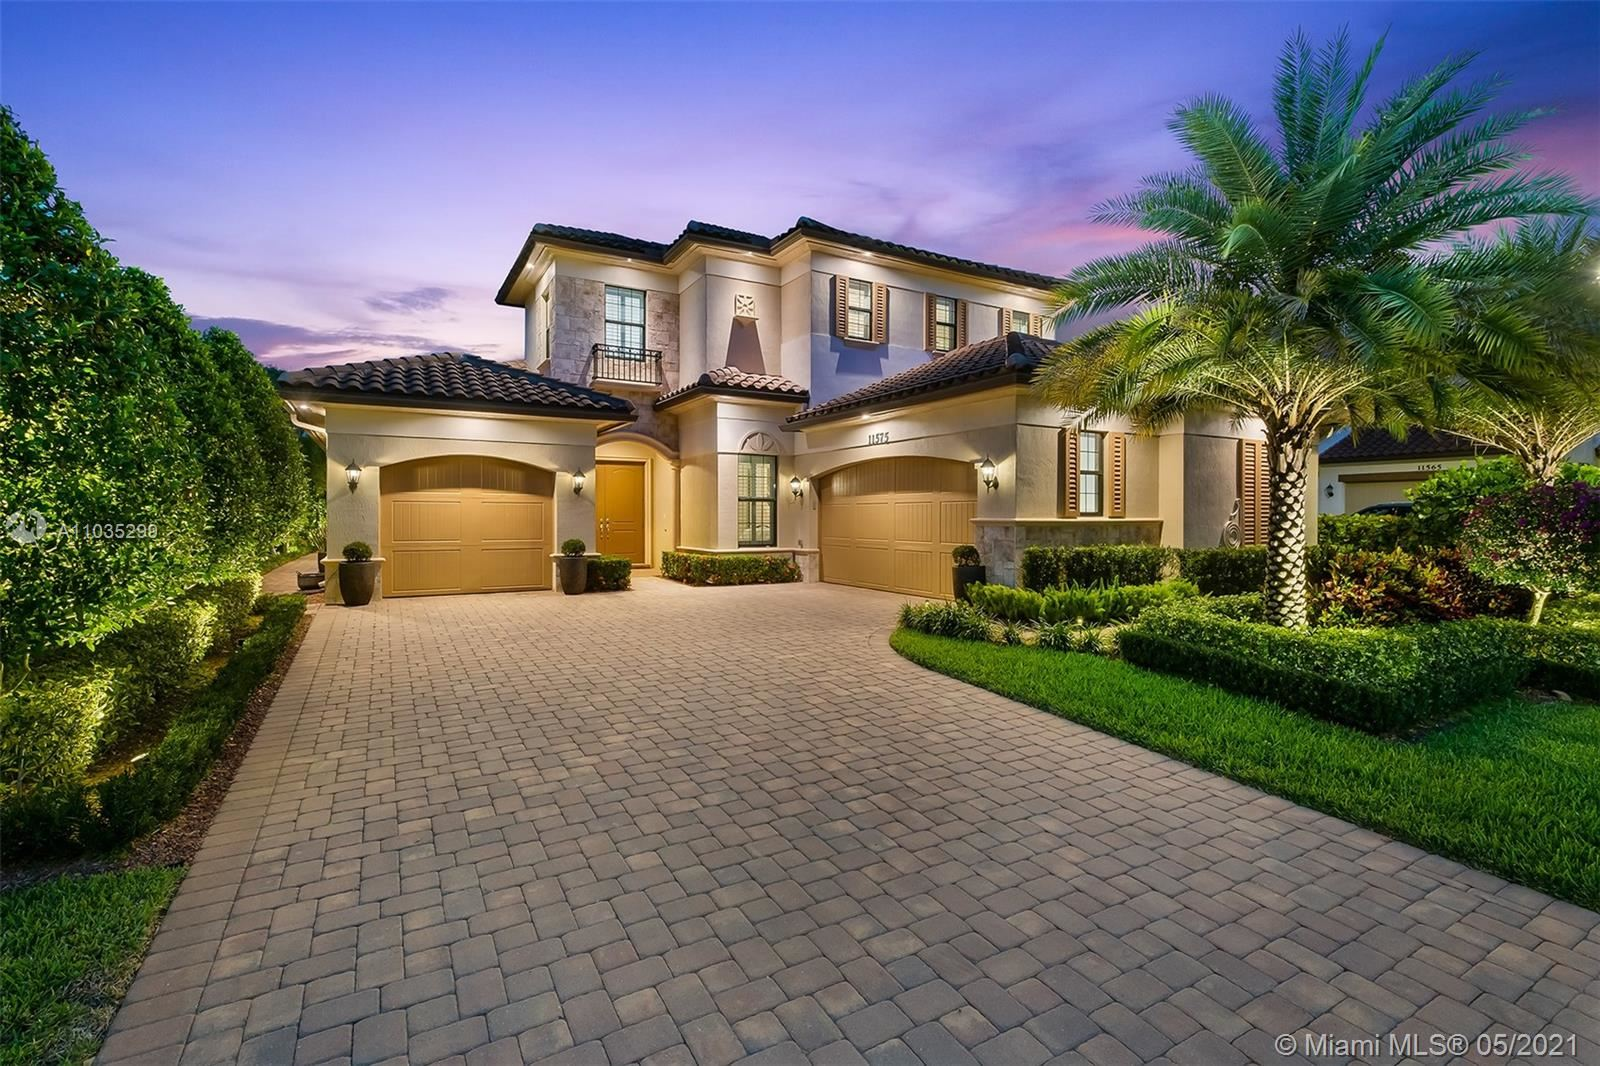 Photo of 11575 NW 83rd Way, Parkland, FL 33076 (MLS # A11035299)